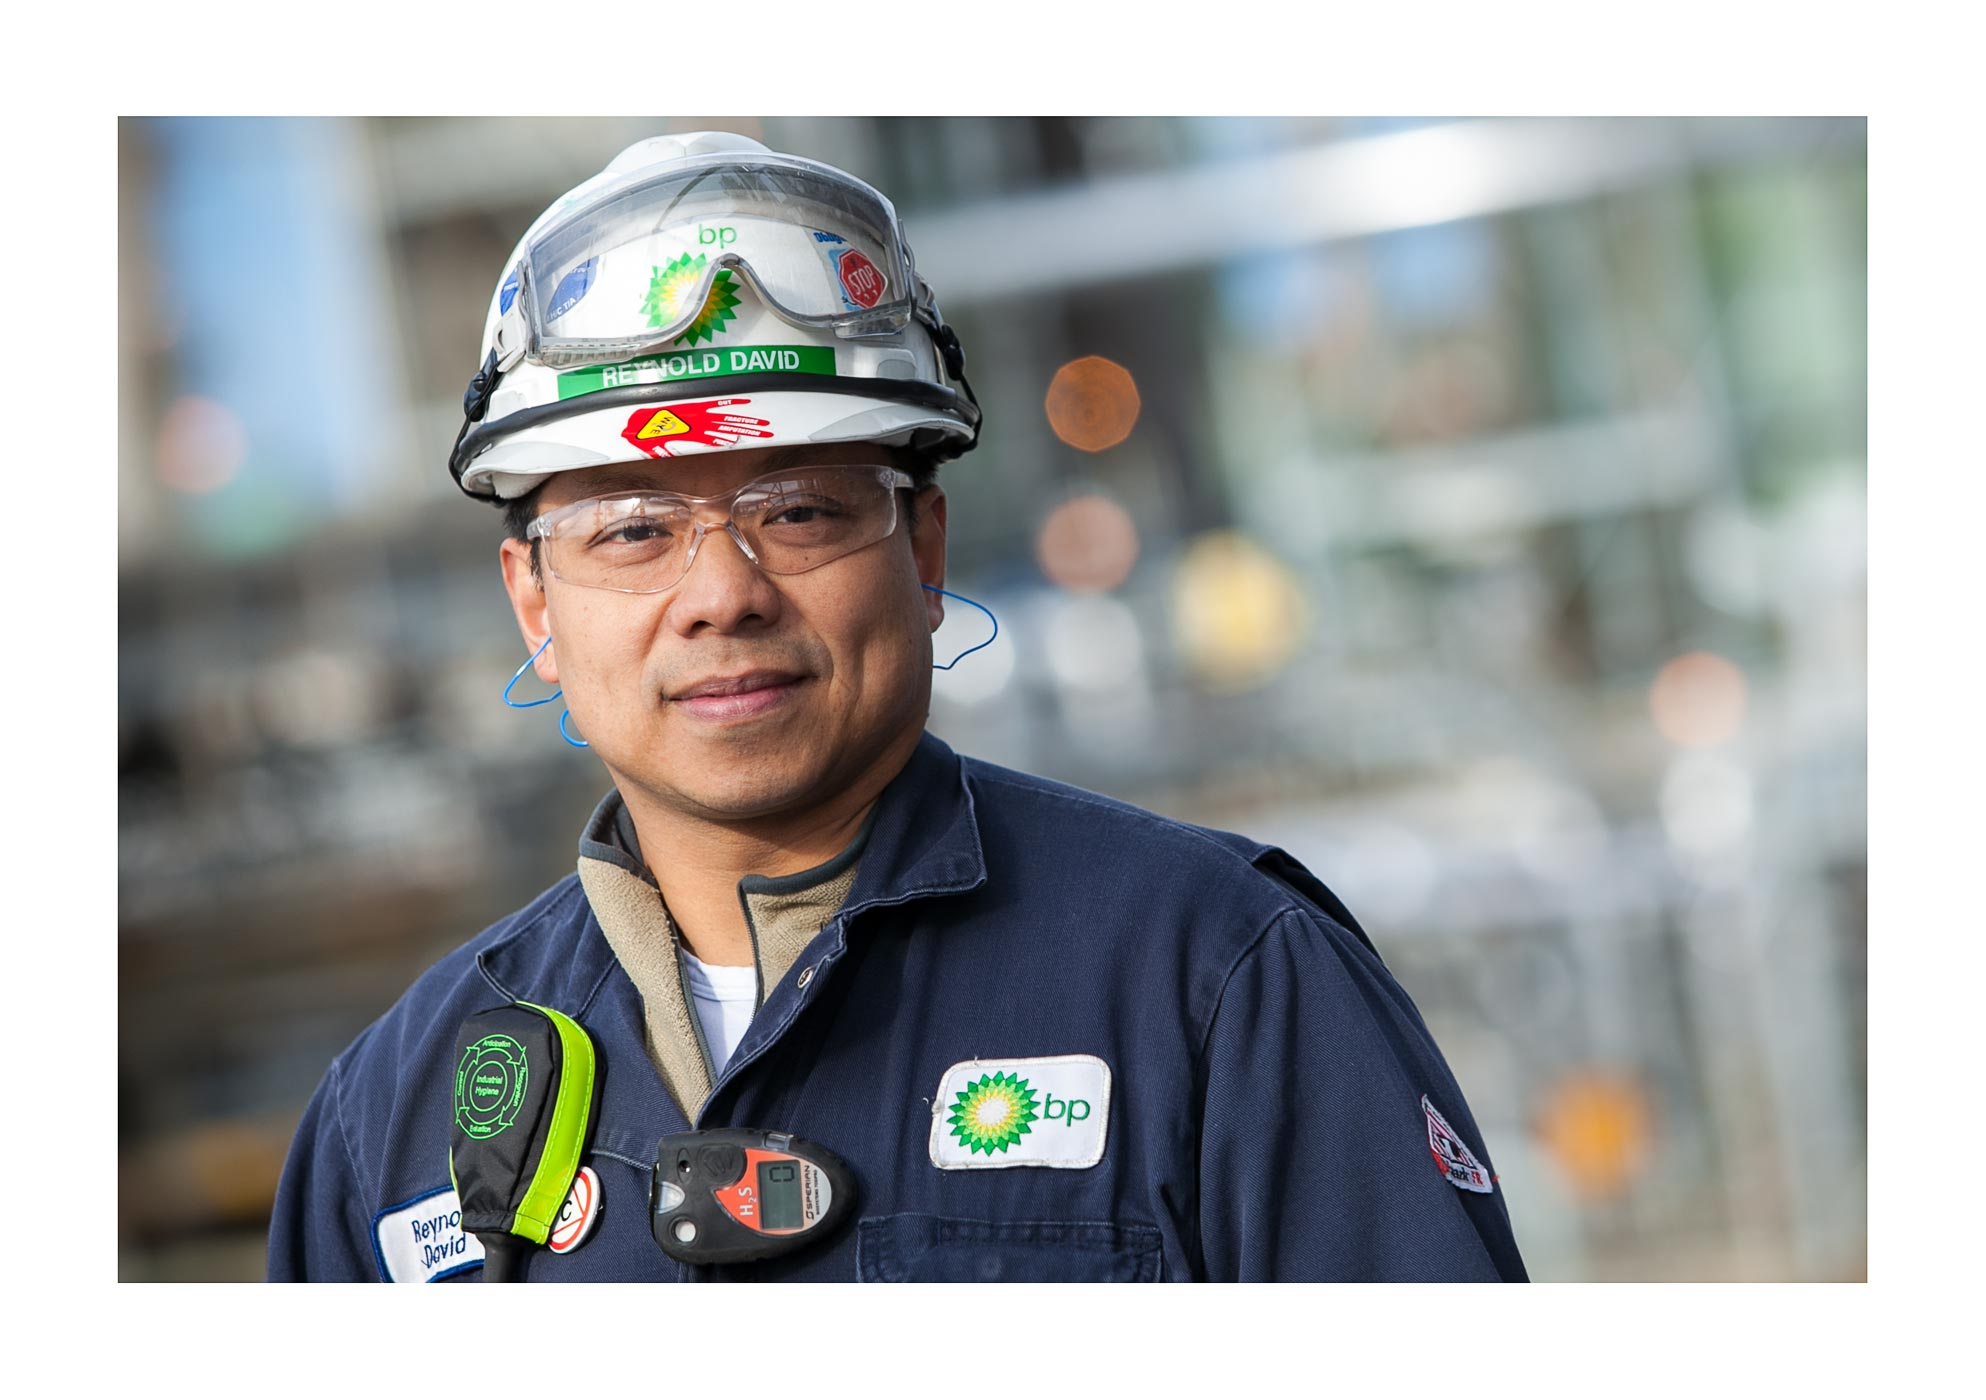 REFINERY WORKER PORTRAIT INDUSTRIAL HYGIENIST